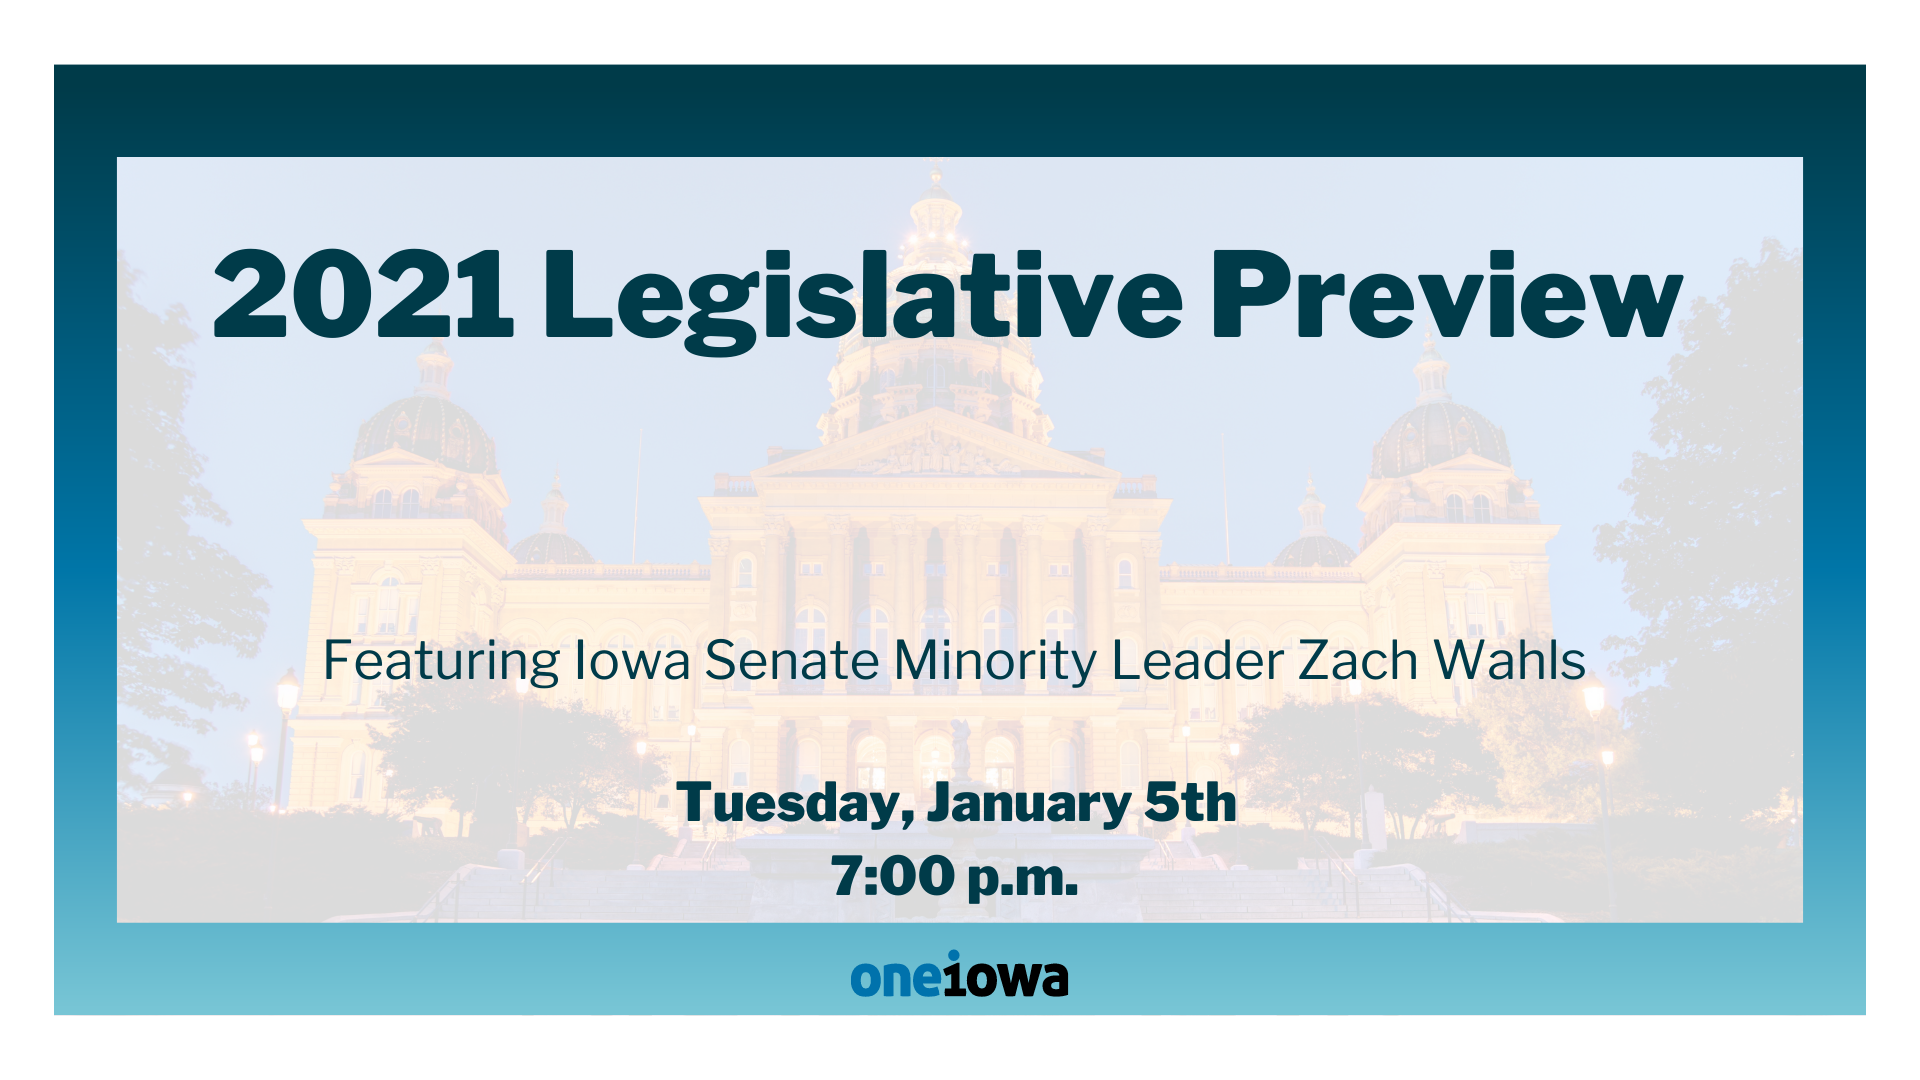 One Iowa Legislative Preview